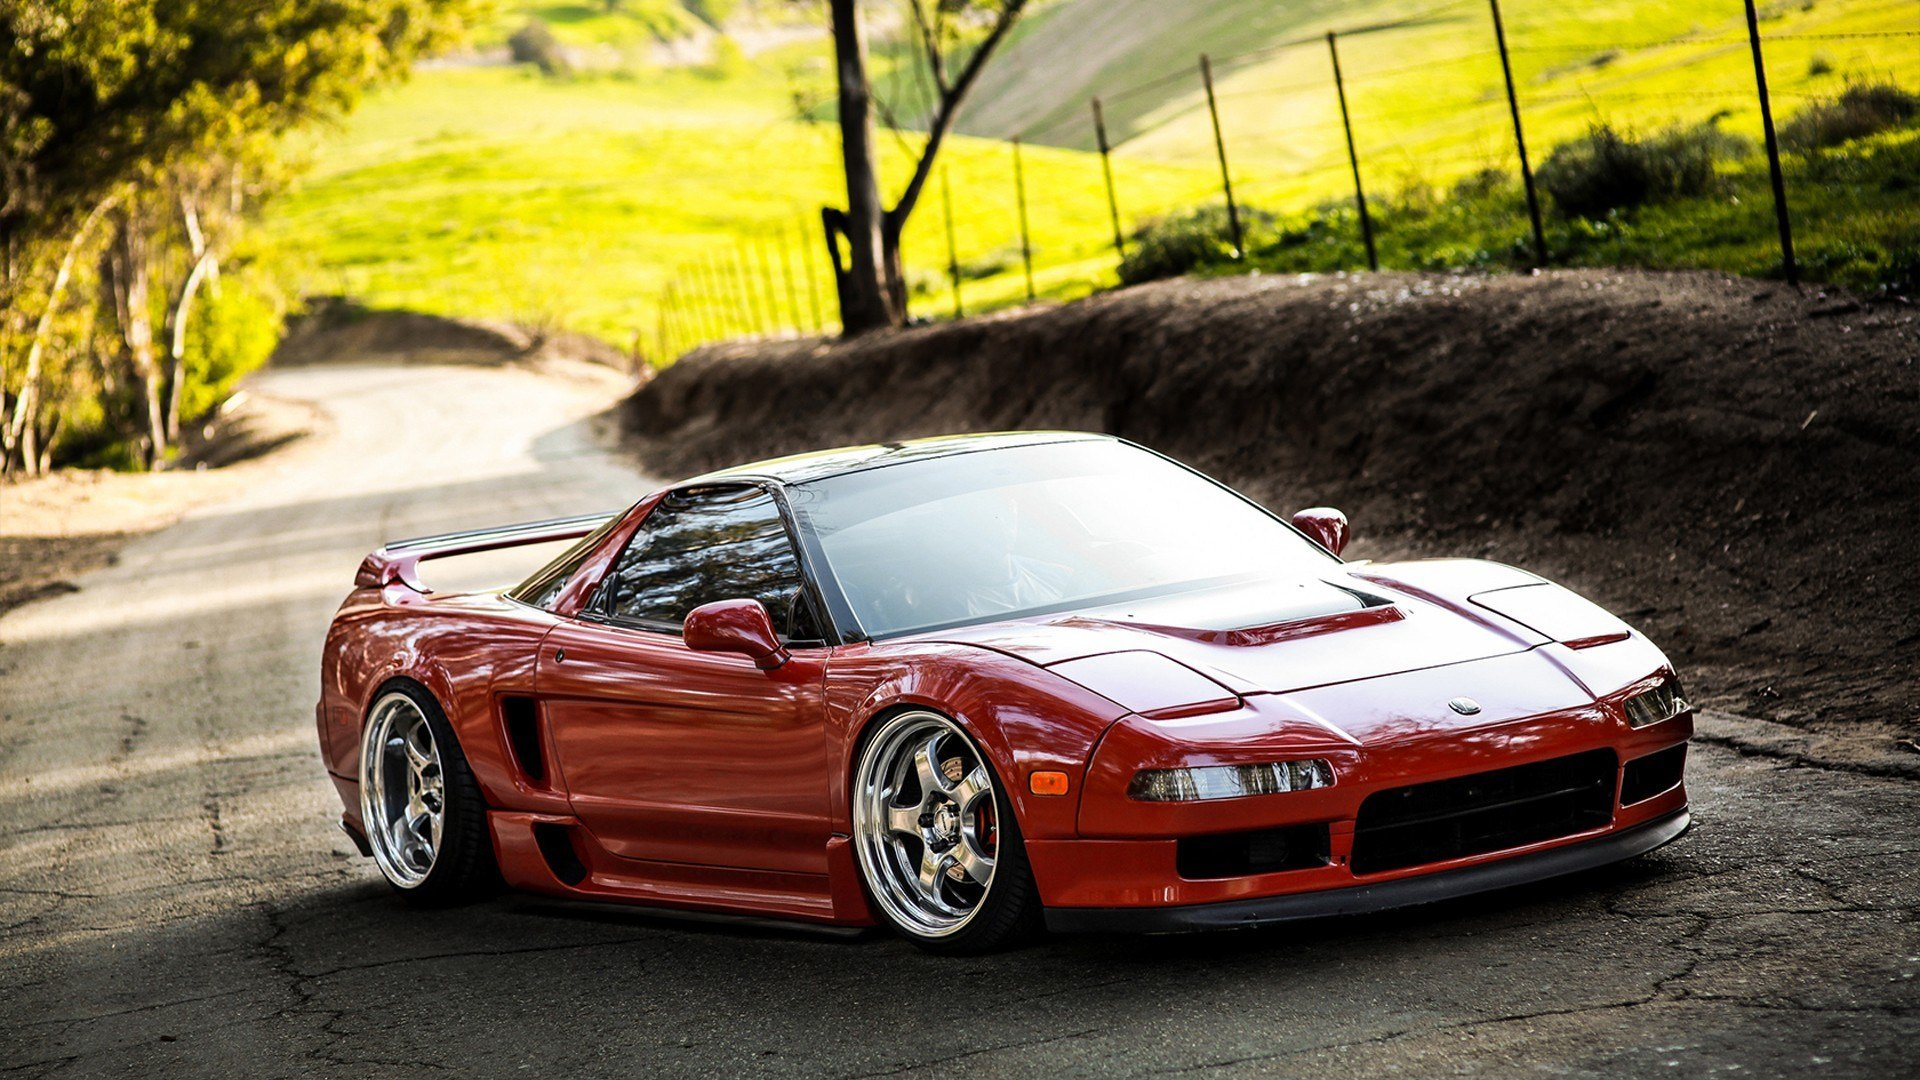 Latest Honda Nsx Wallpapers High Resolution And Quality Free Download